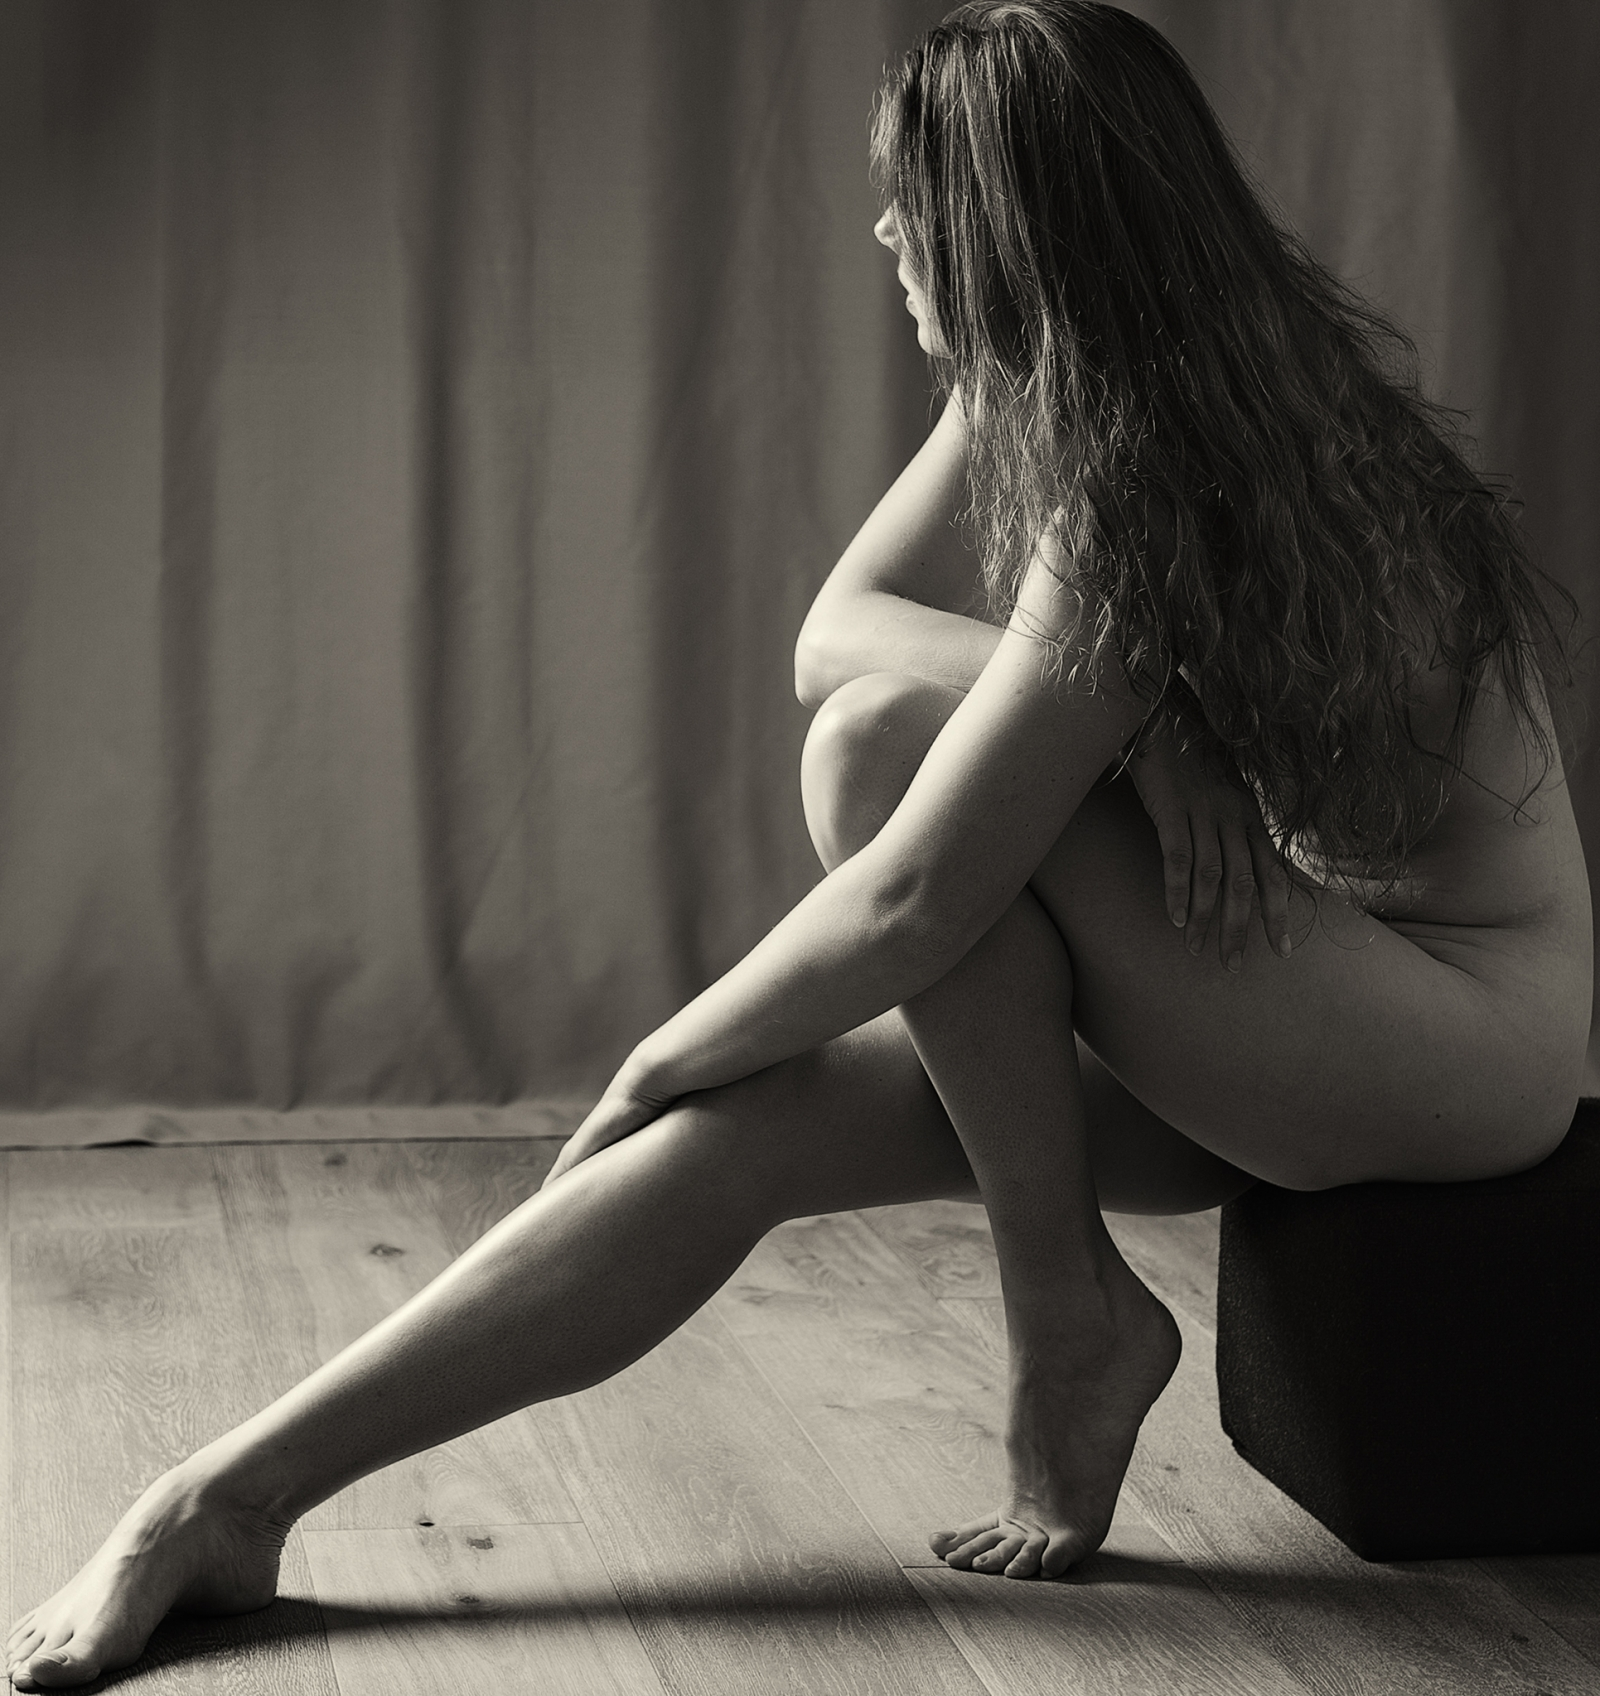 Fine art portrait of a female with outstretched leg looking into the light.